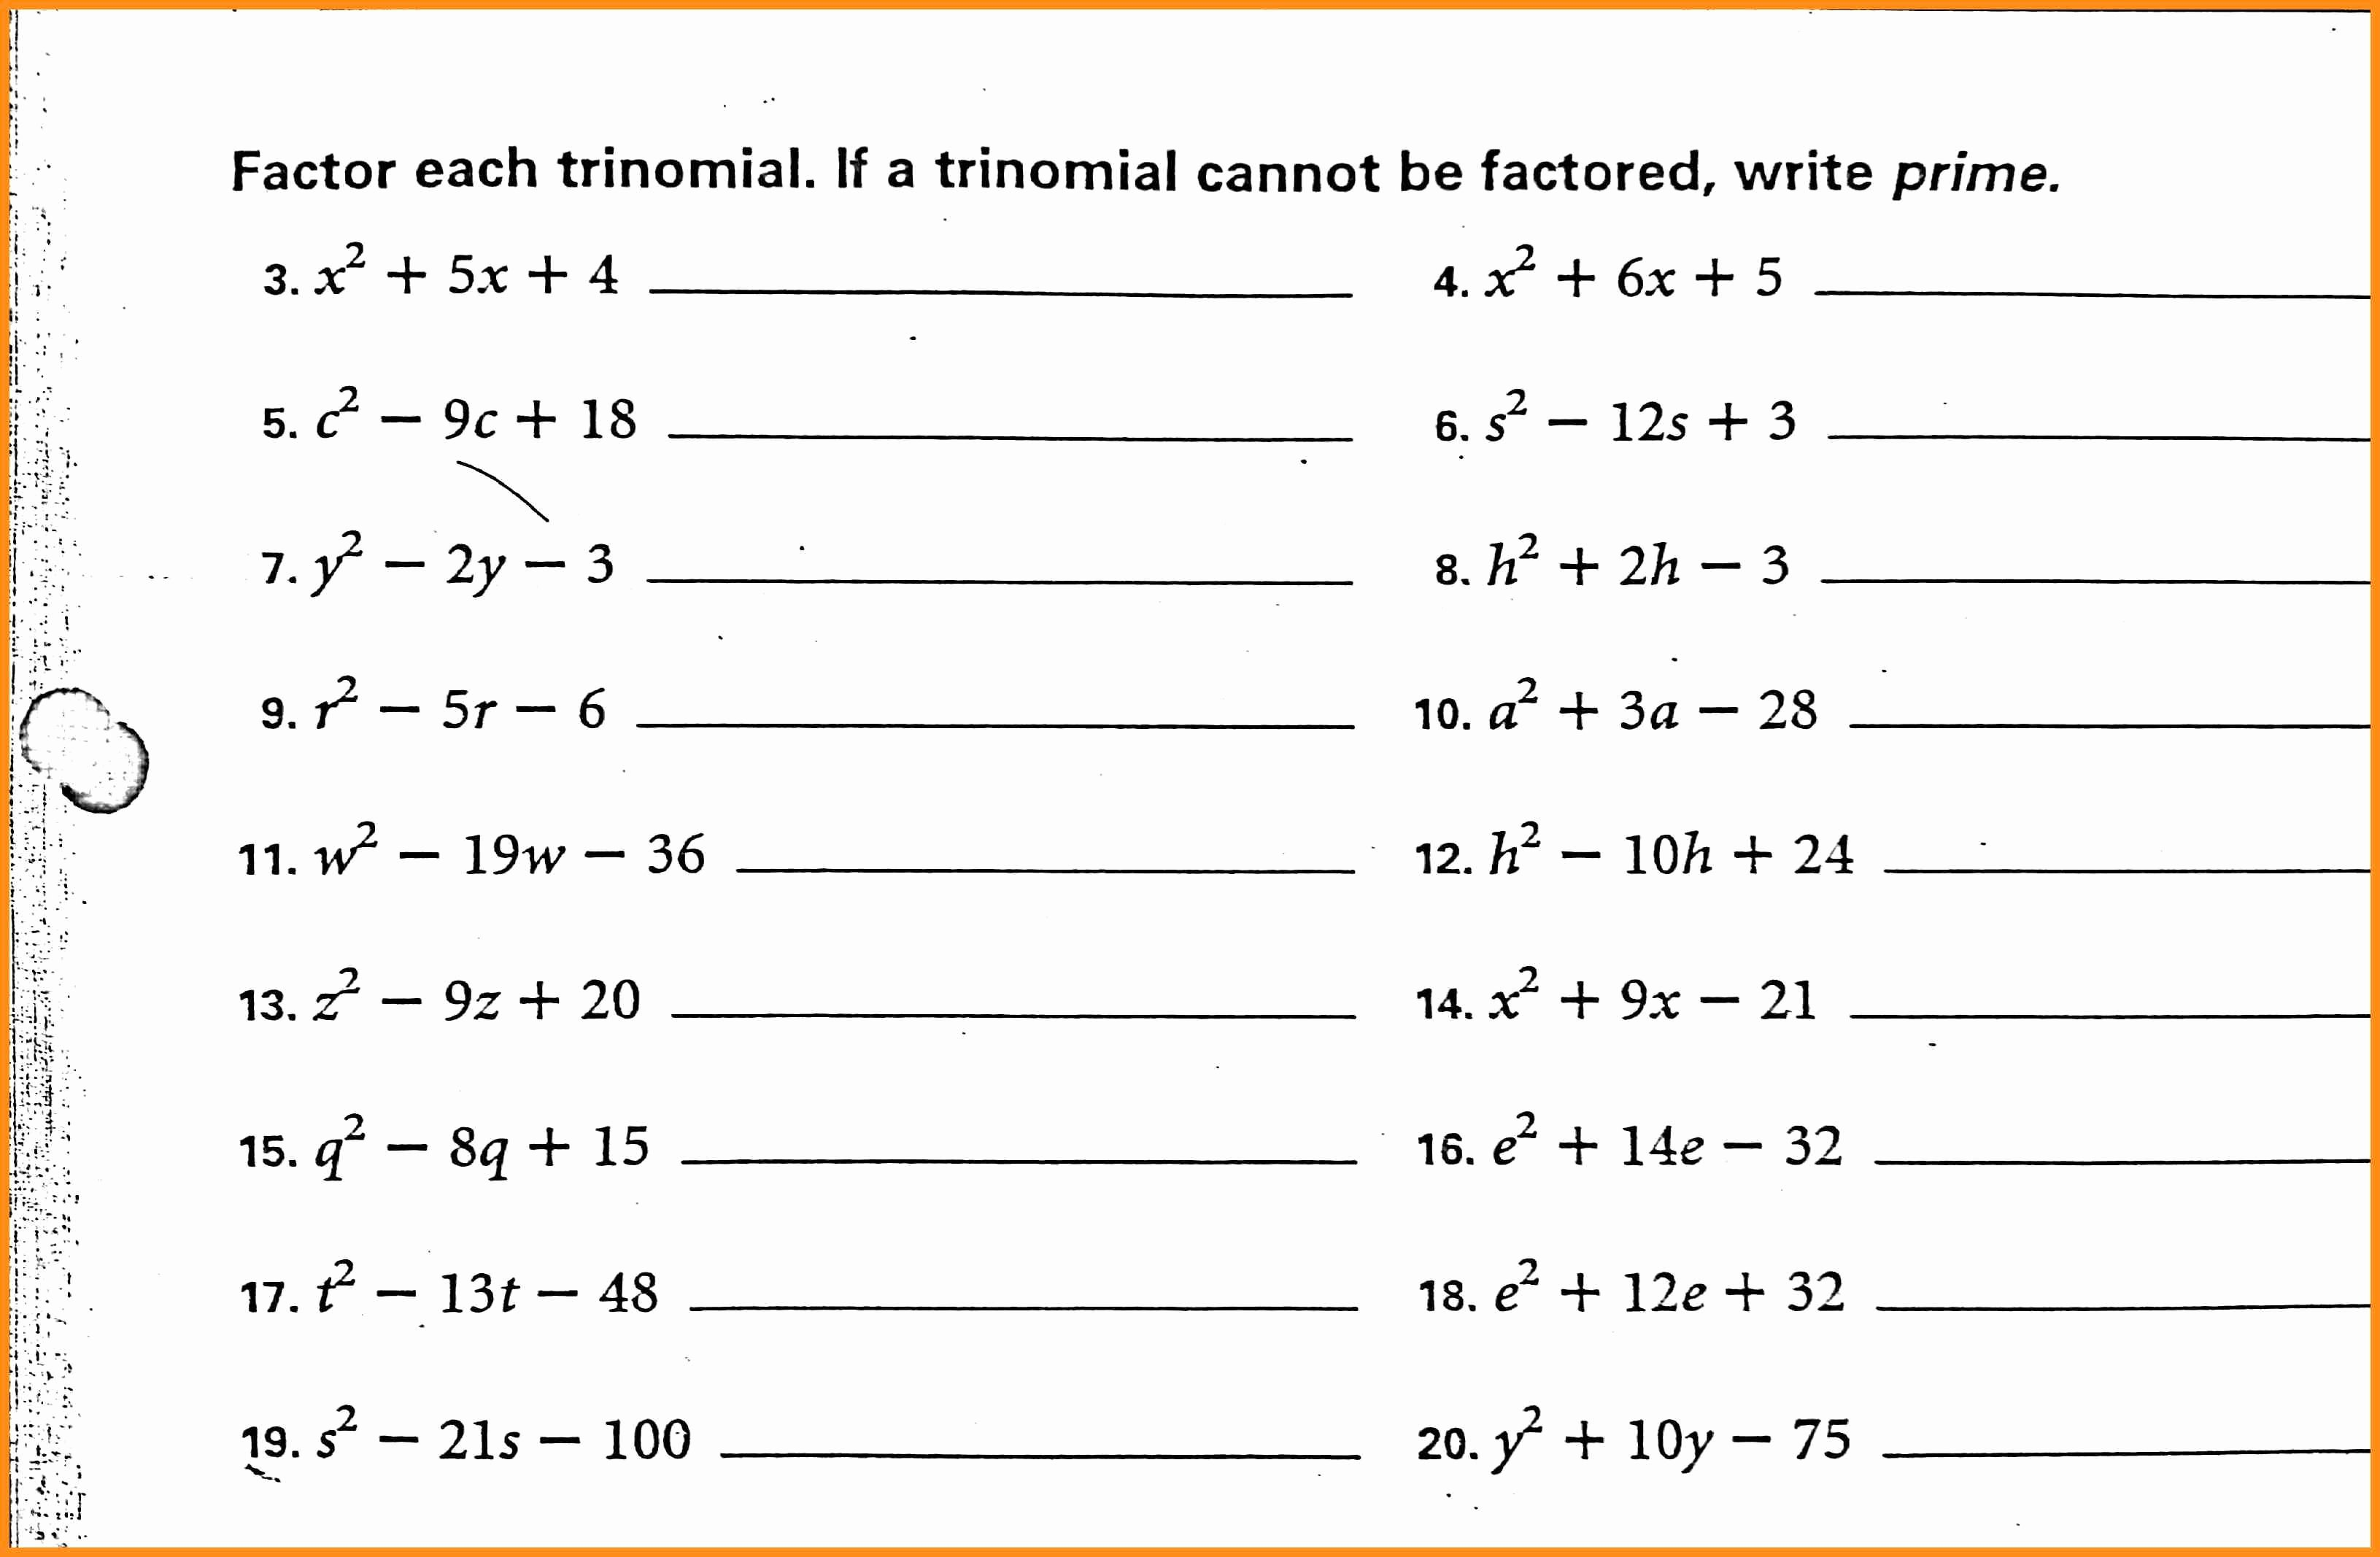 Factoring Trinomials Worksheet Pdf Elegant 56 Factoring Polynomials Worksheet Pdf Factoring